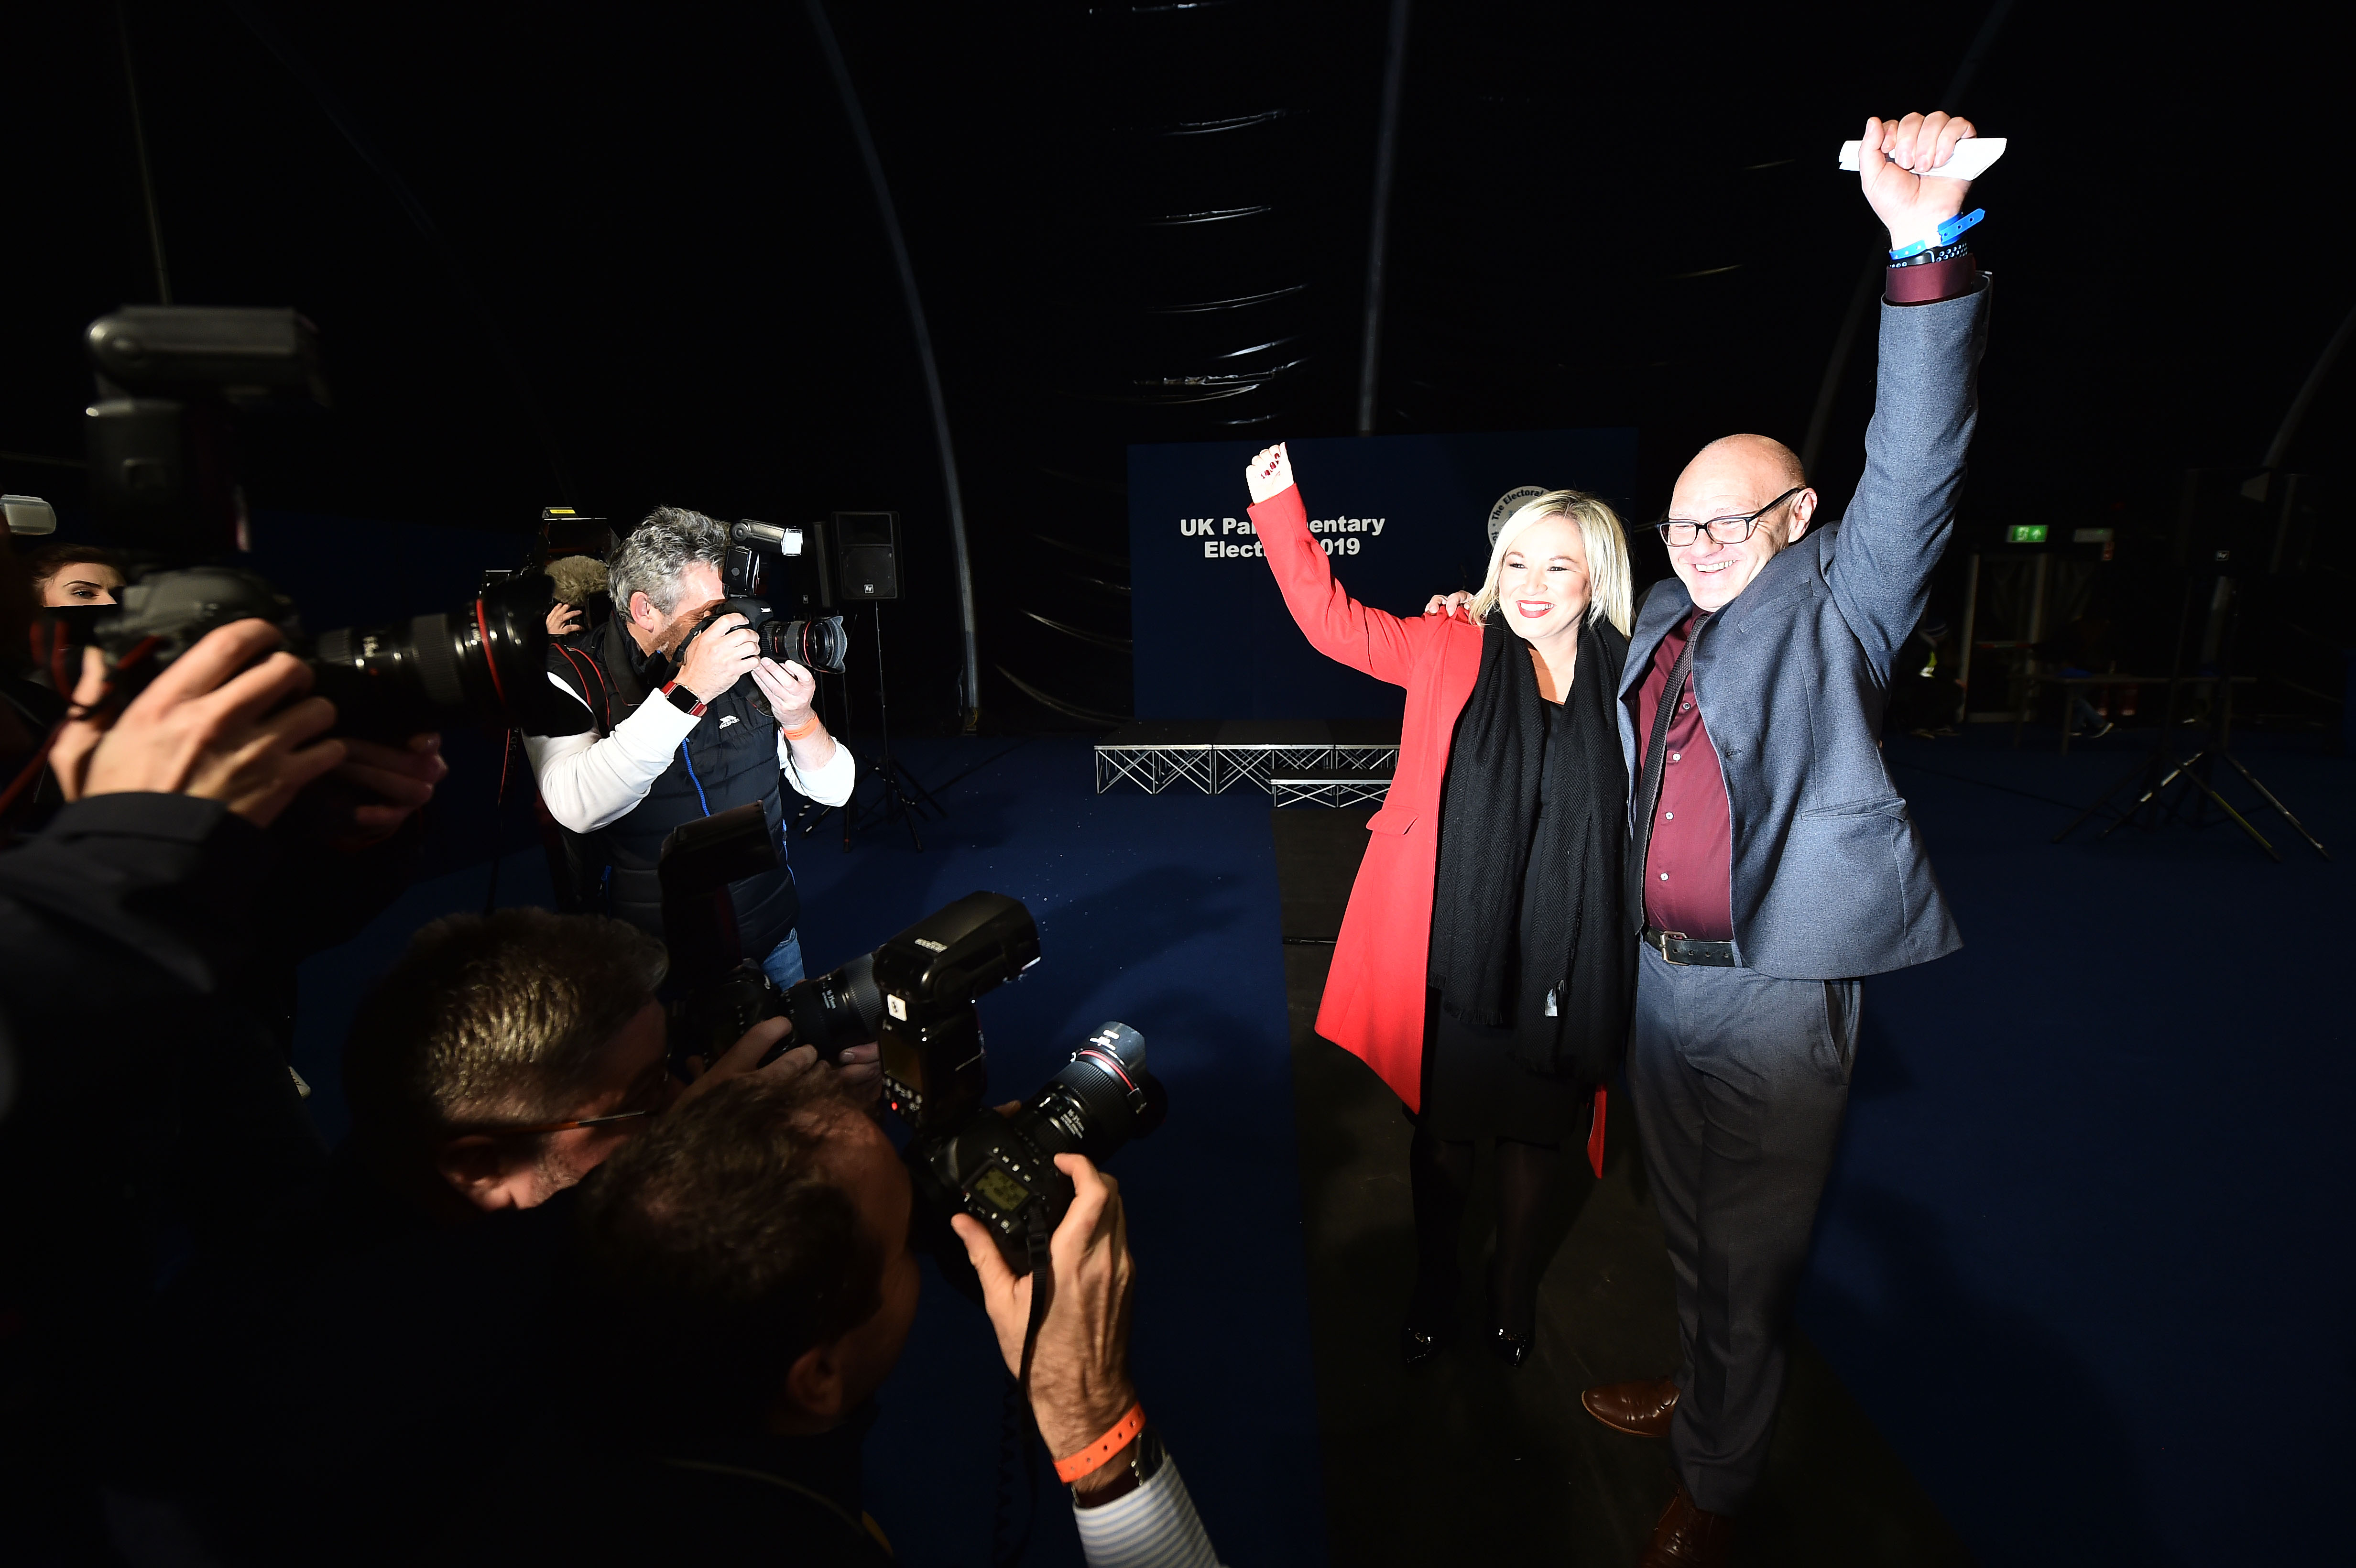 BELFAST, NORTHERN IRELAND - DECEMBER 13:  Sinn Fein candidate Paul Maskey celebrates his victory in the west Belfast constituency alongside Sinn Fein northern leader Michelle ONeill in the Belfast count centre at the Titanic Exhibition centre on December 13, 2019 in Belfast, United Kingdom. The current Conservative Prime Minister Boris Johnson called the first UK winter election for nearly a century in an attempt to gain a working majority to break the parliamentary deadlock over Brexit. The election results from across the country are being counted and an overall result is expected in the early hours of Friday morning. (Photo by Charles McQuillan/Getty Images)